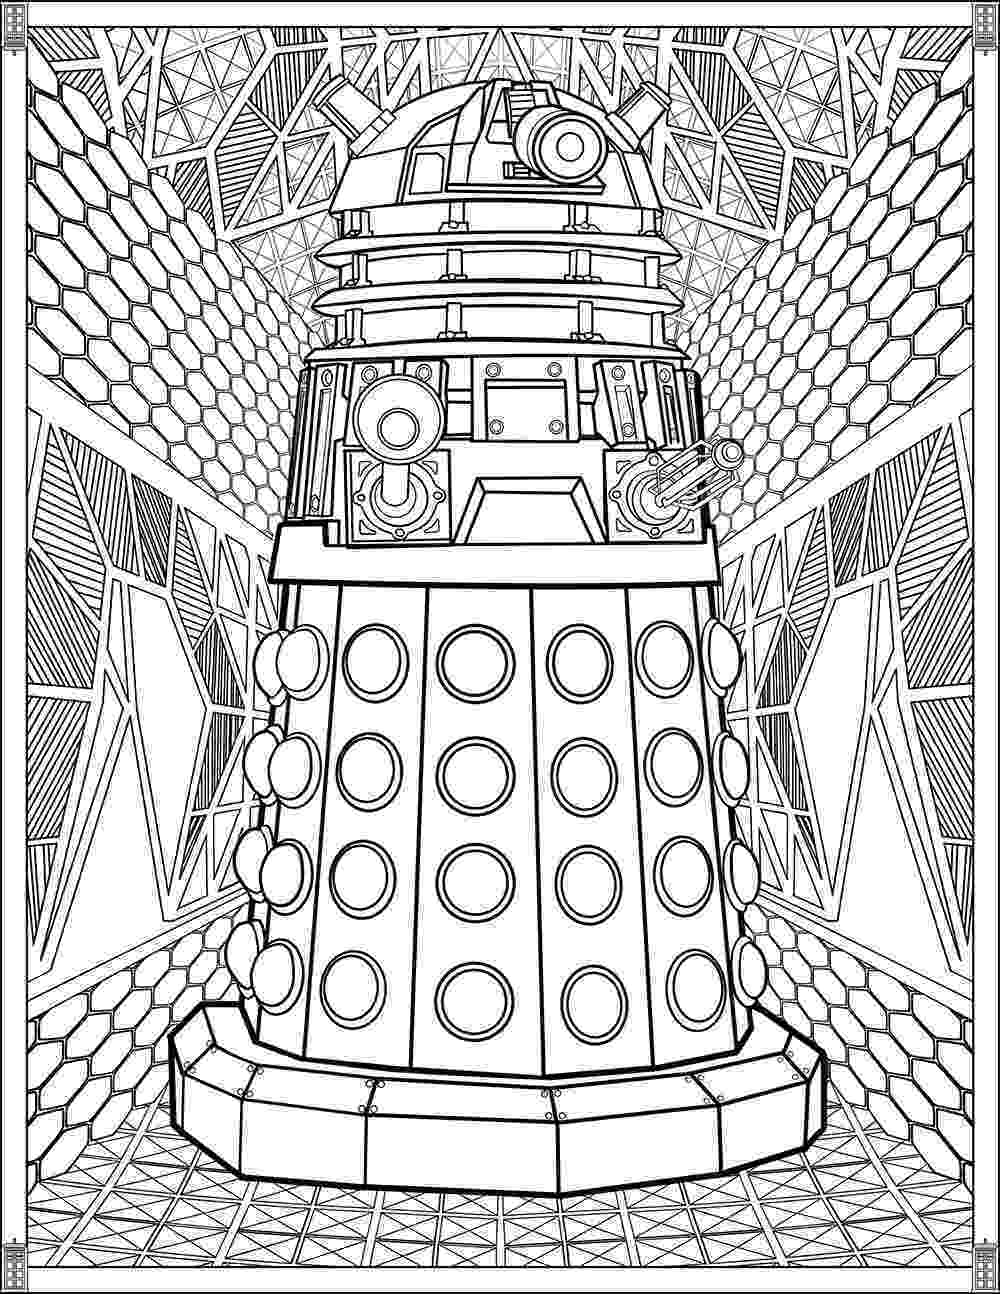 doctor who tardis coloring pages doctor who wibbly wobbly timey wimey coloring pages pages tardis who coloring doctor